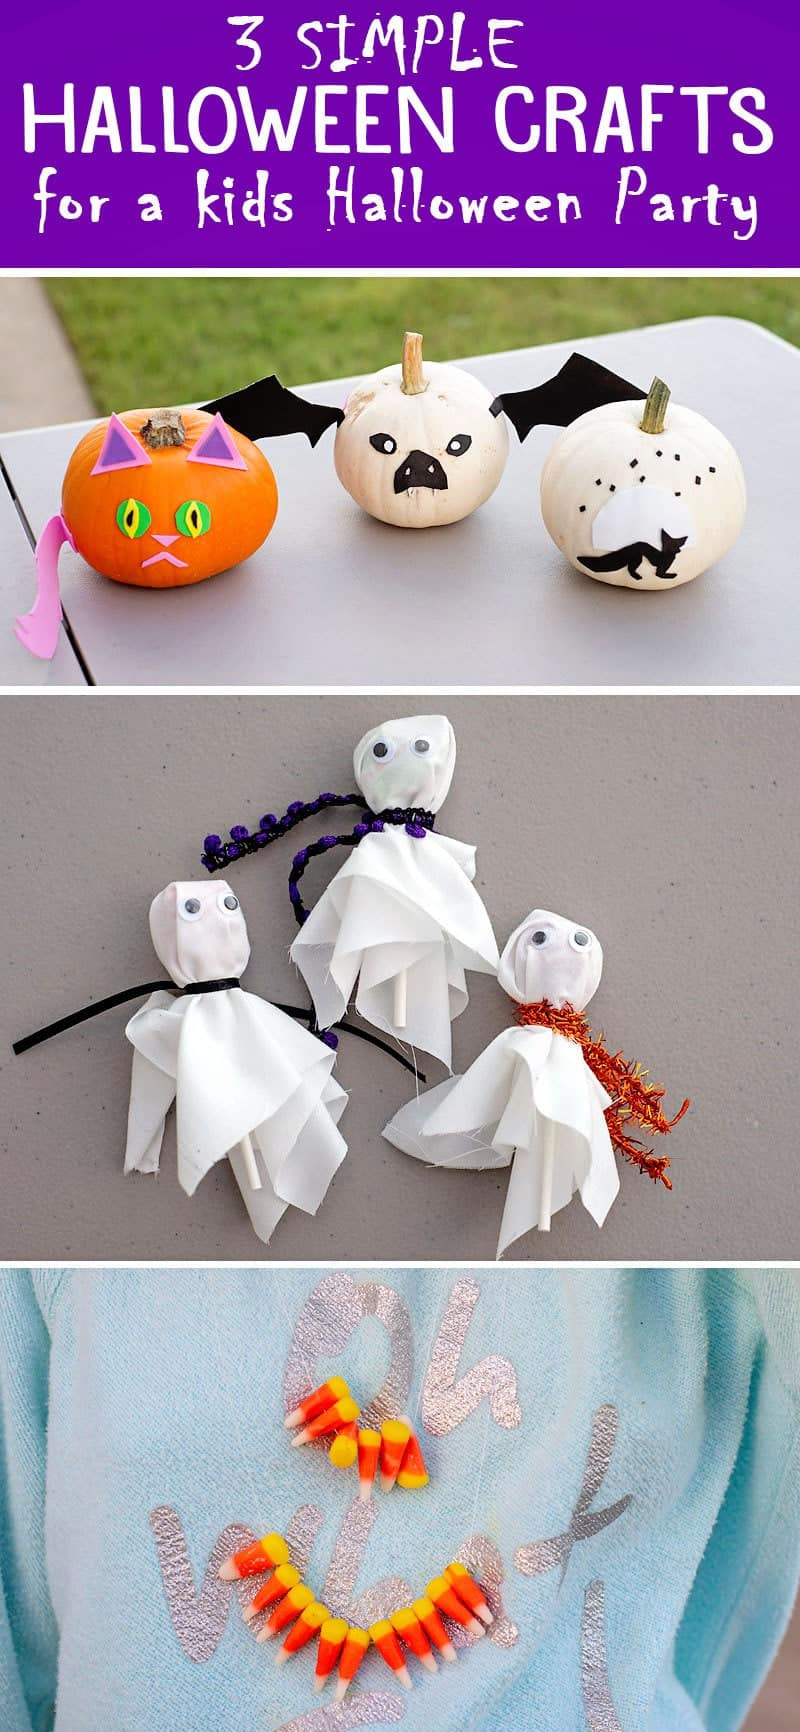 Simple Halloween Party craft ideas for the kids to do at your Halloween Party, plus tips on how to save on all your craft and party supplies.